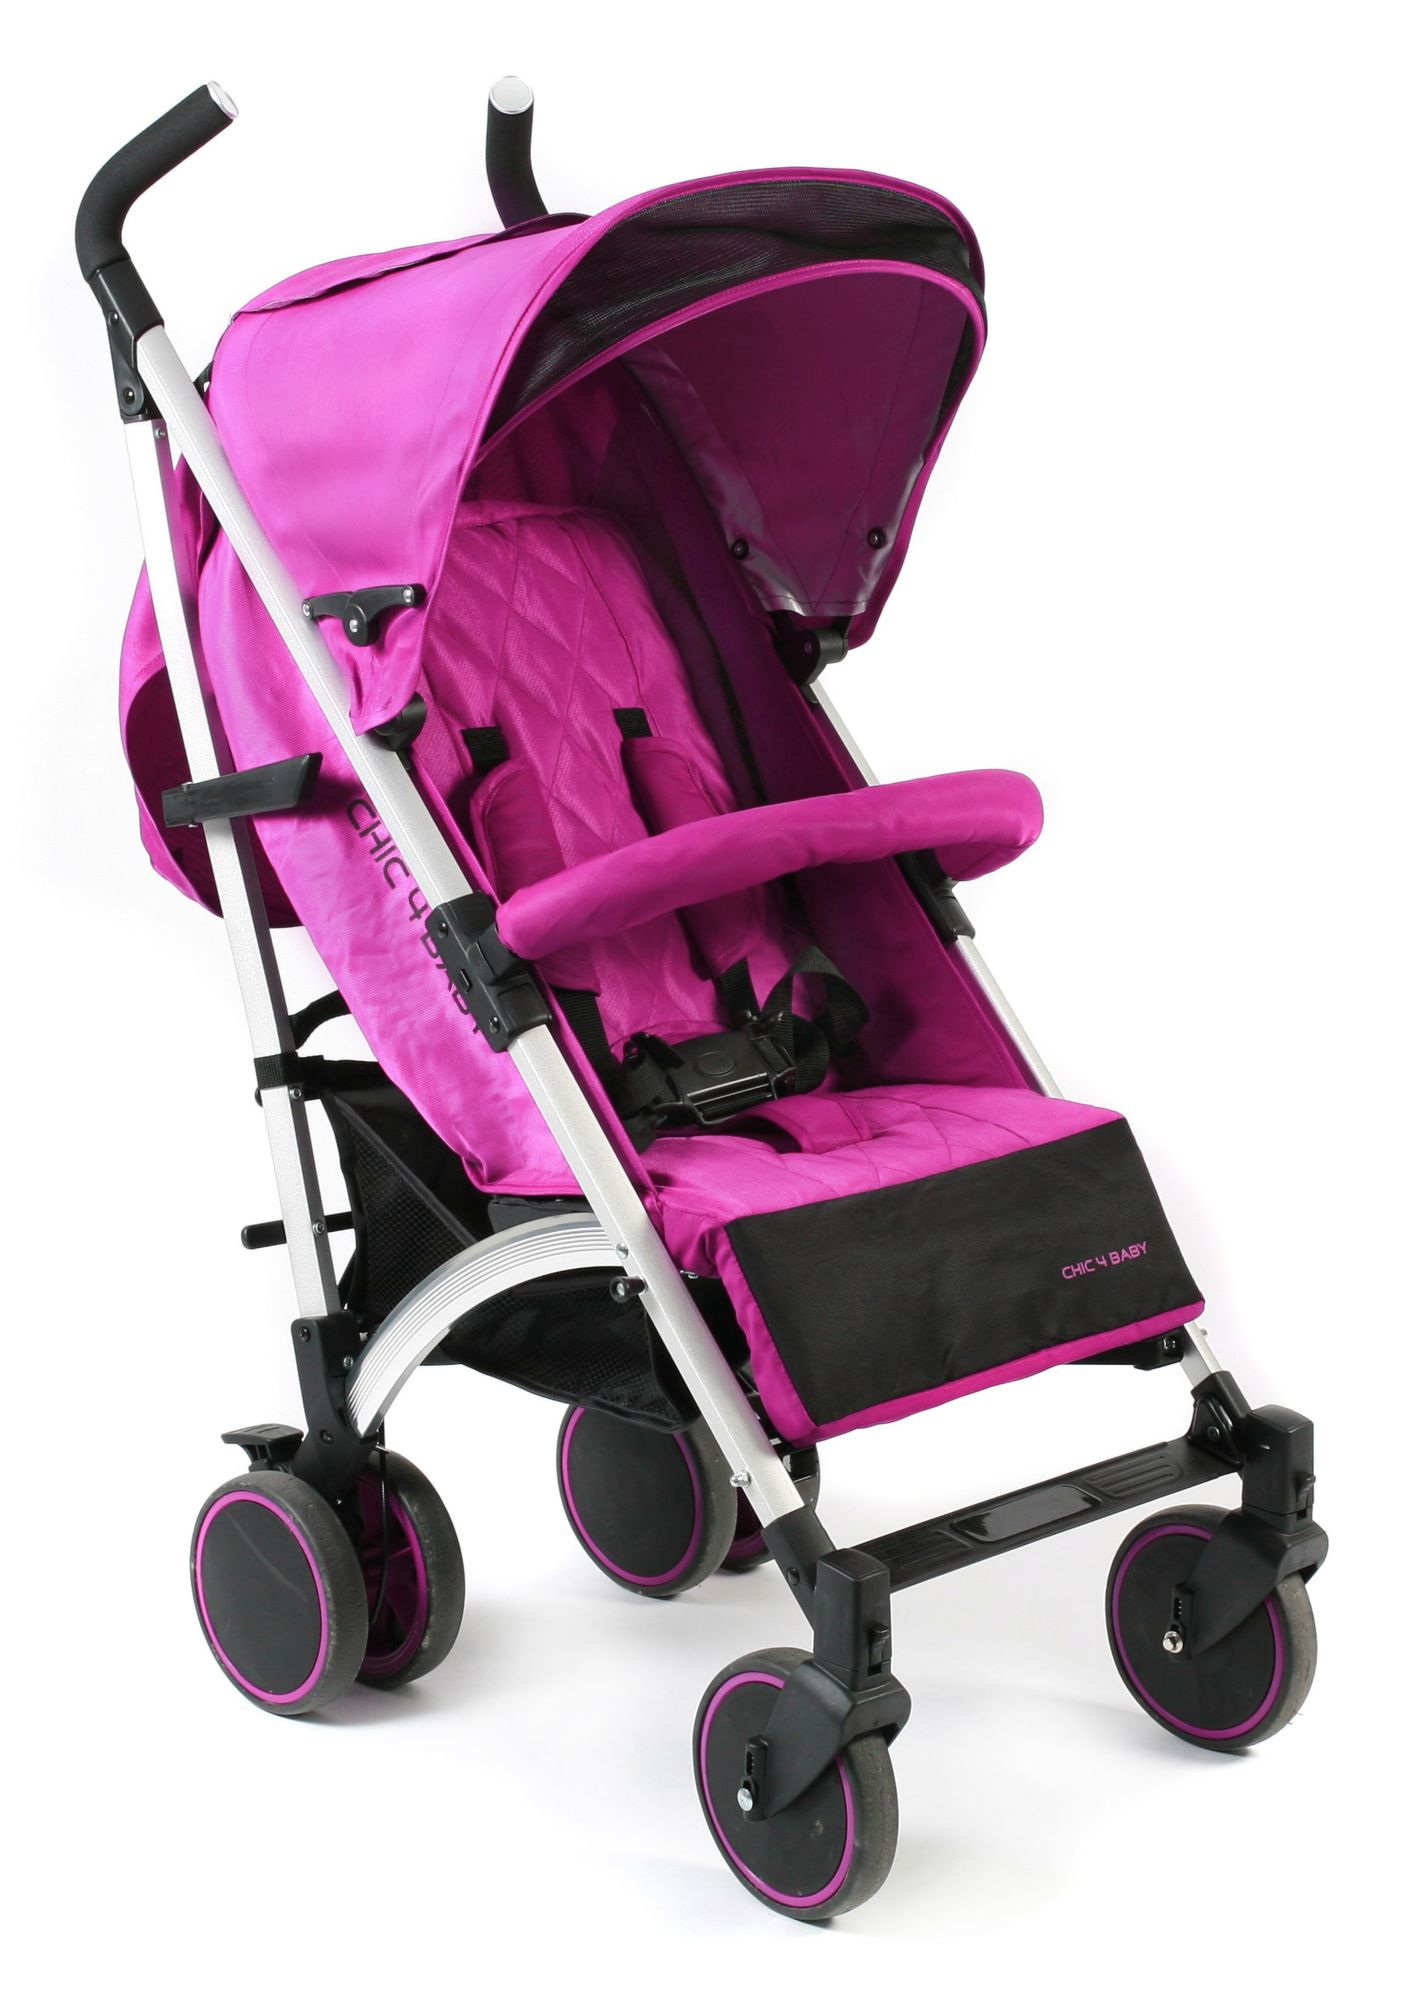 CHIC4BABY , Kinder-Buggy »Luca, fuchsia«